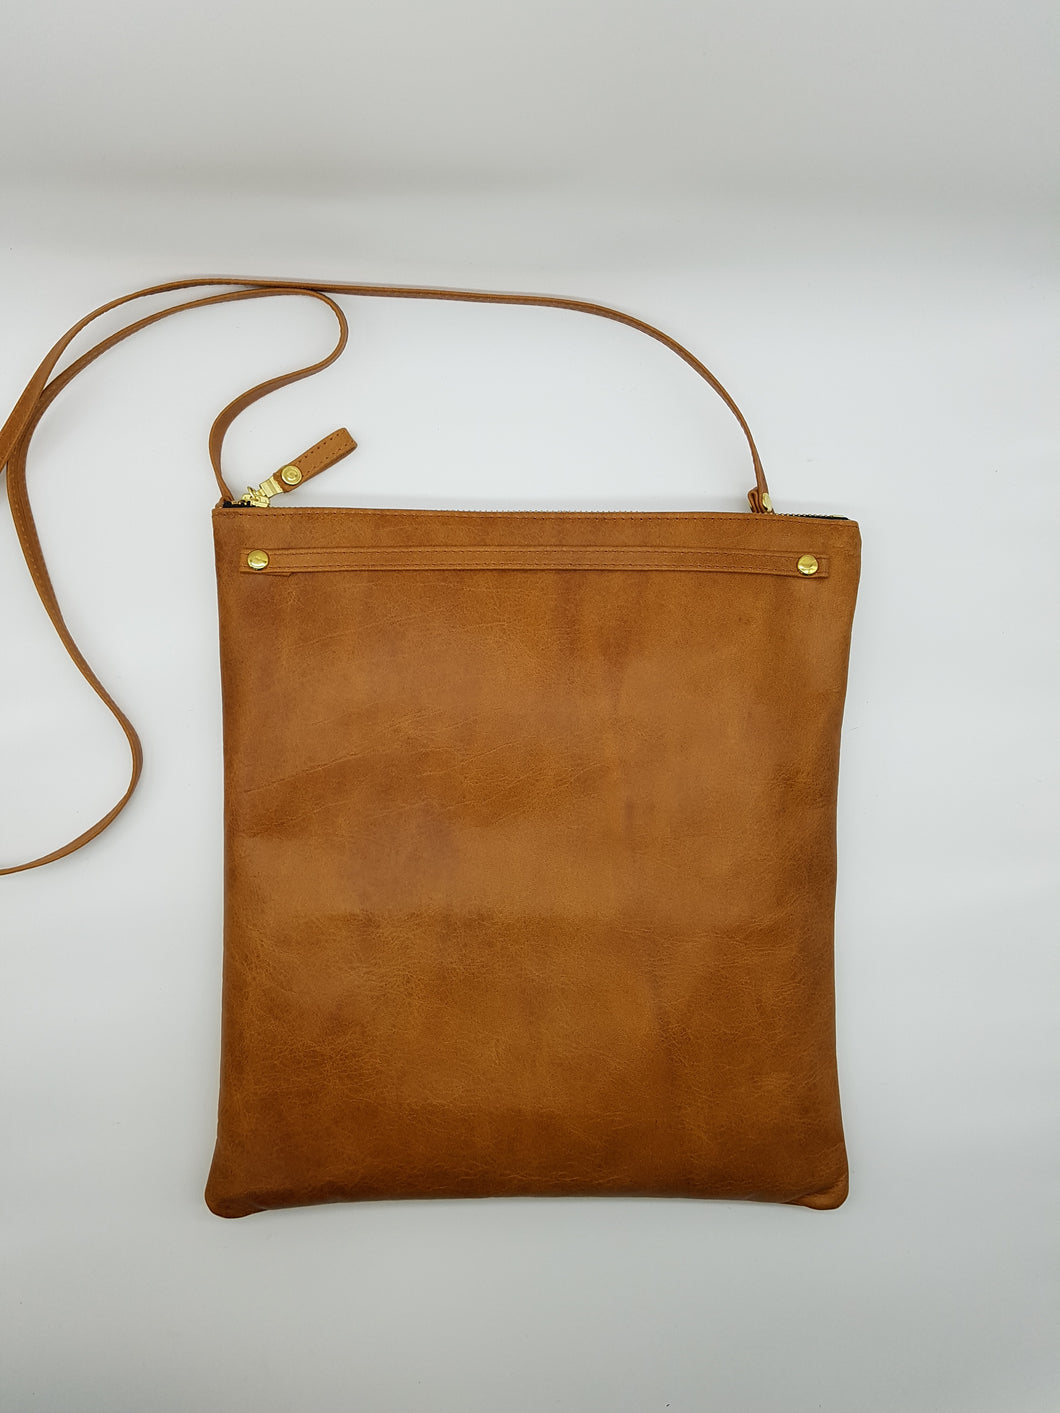 handcrafted cowhide leather cross body bag which fits ipad and tablet